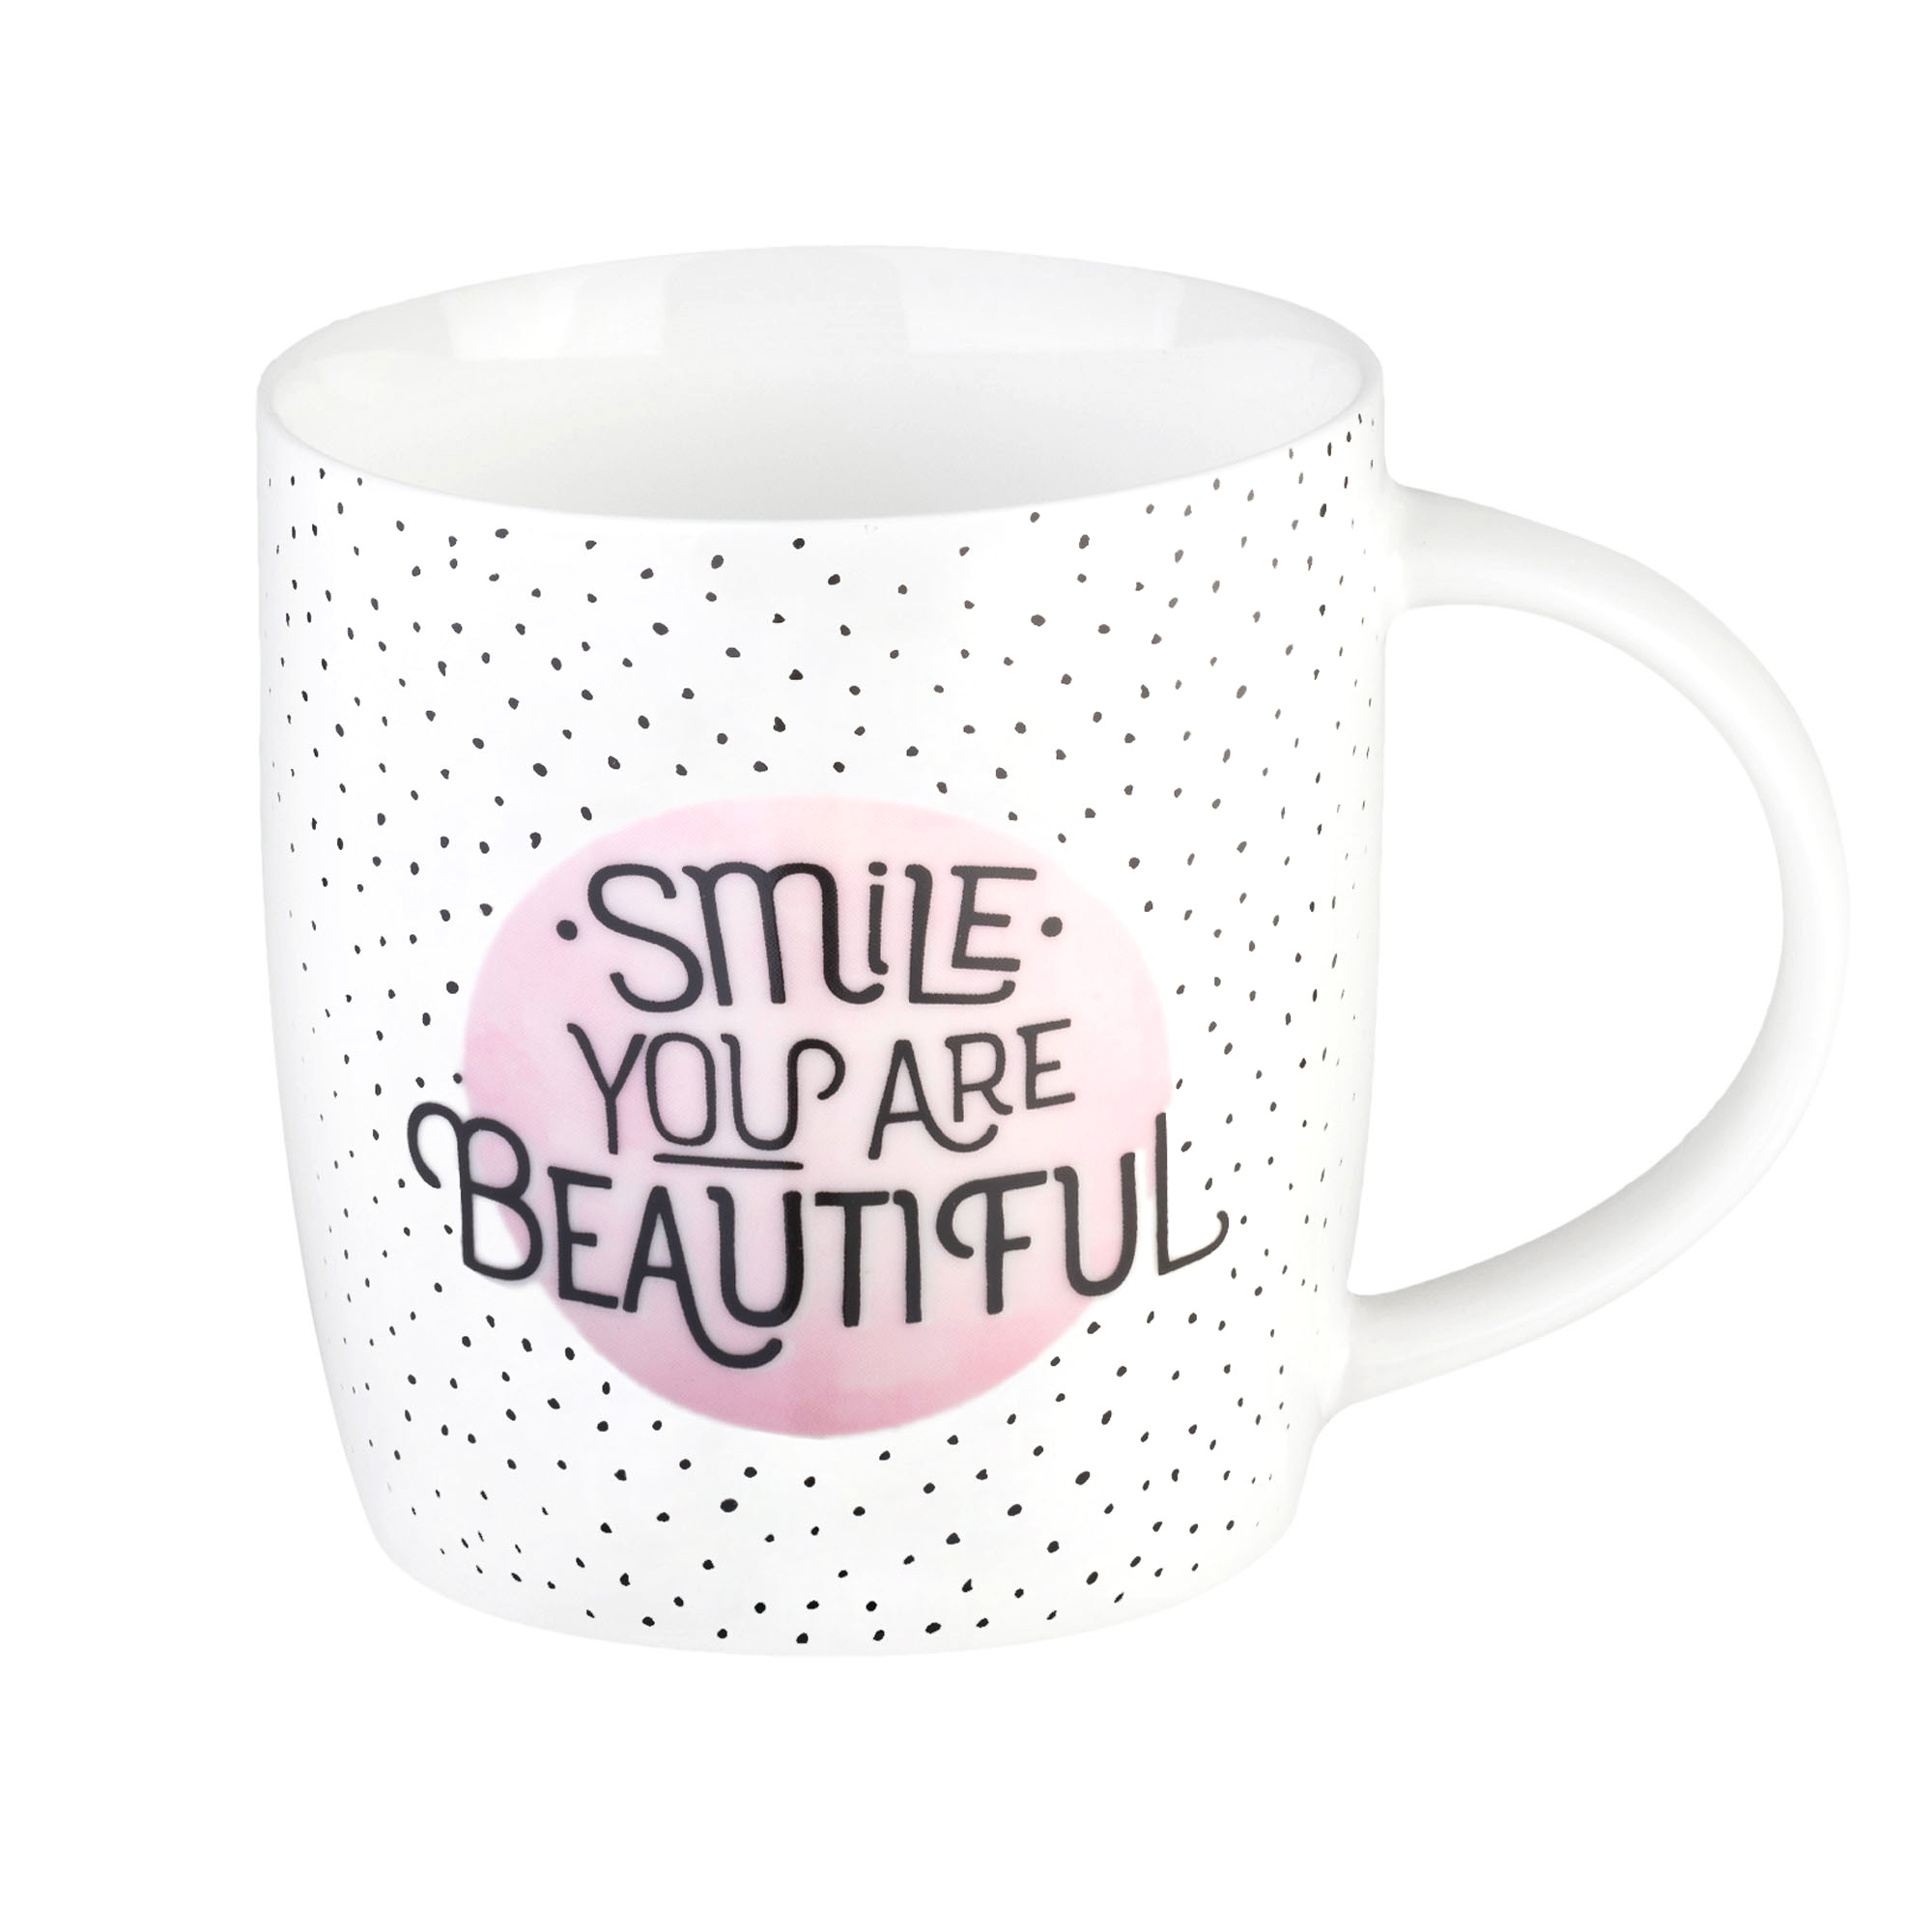 Legami BuongiornoMug SmileBeautiful350ml